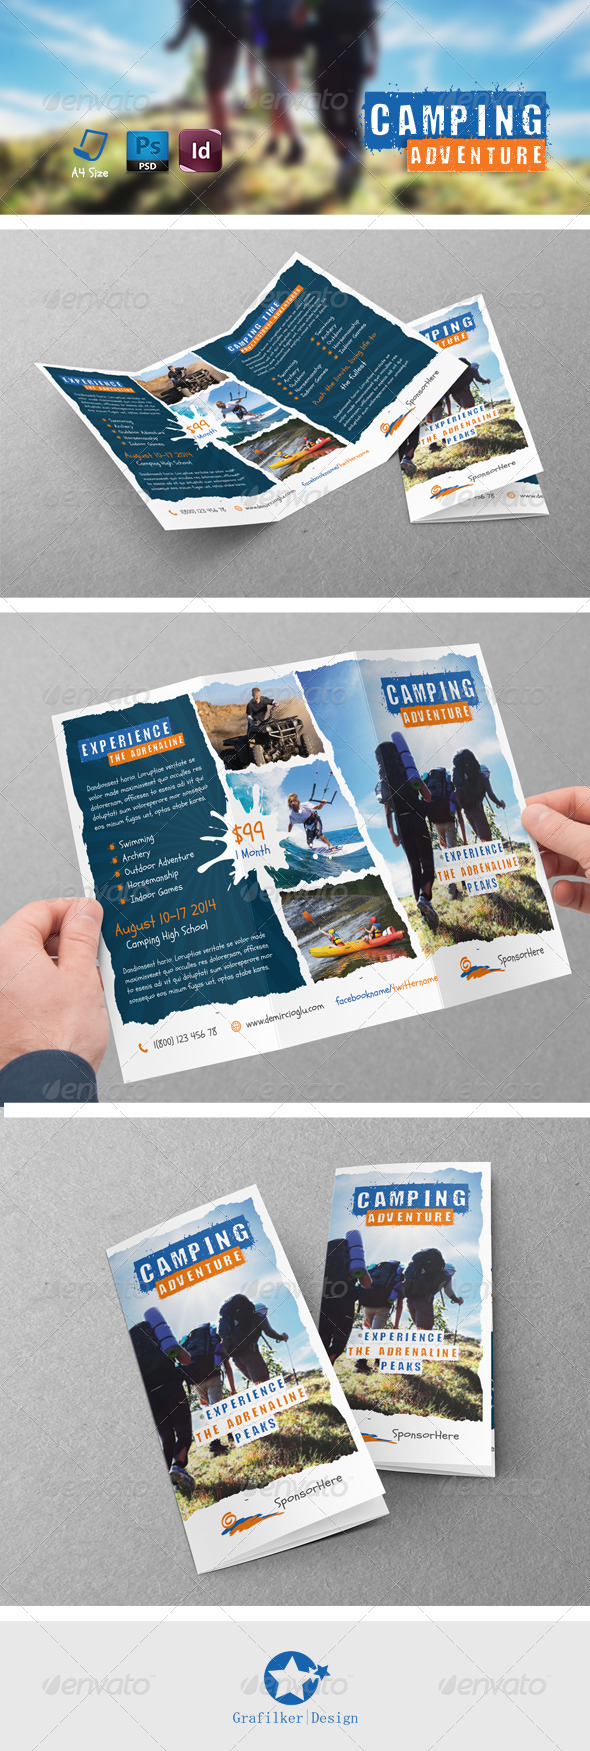 GraphicRiver Camping Adventure Tri-Fold Templates 7892143